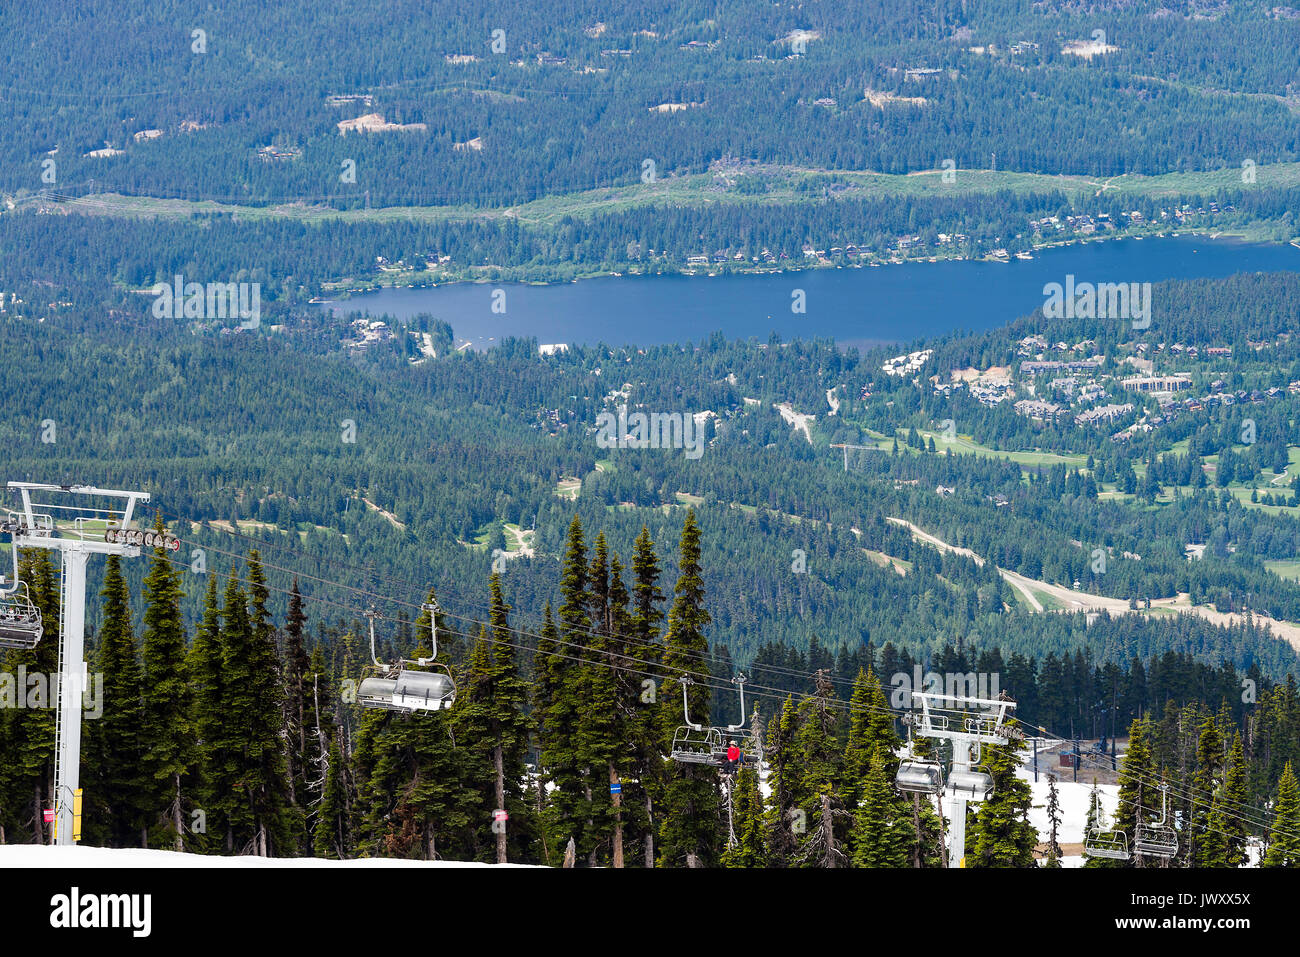 An Express Chairlift at Whistler Ski Resort from The Roundhouse Terrace Area with Whistler Town and Alta Lake British Columbia Canada - Stock Image